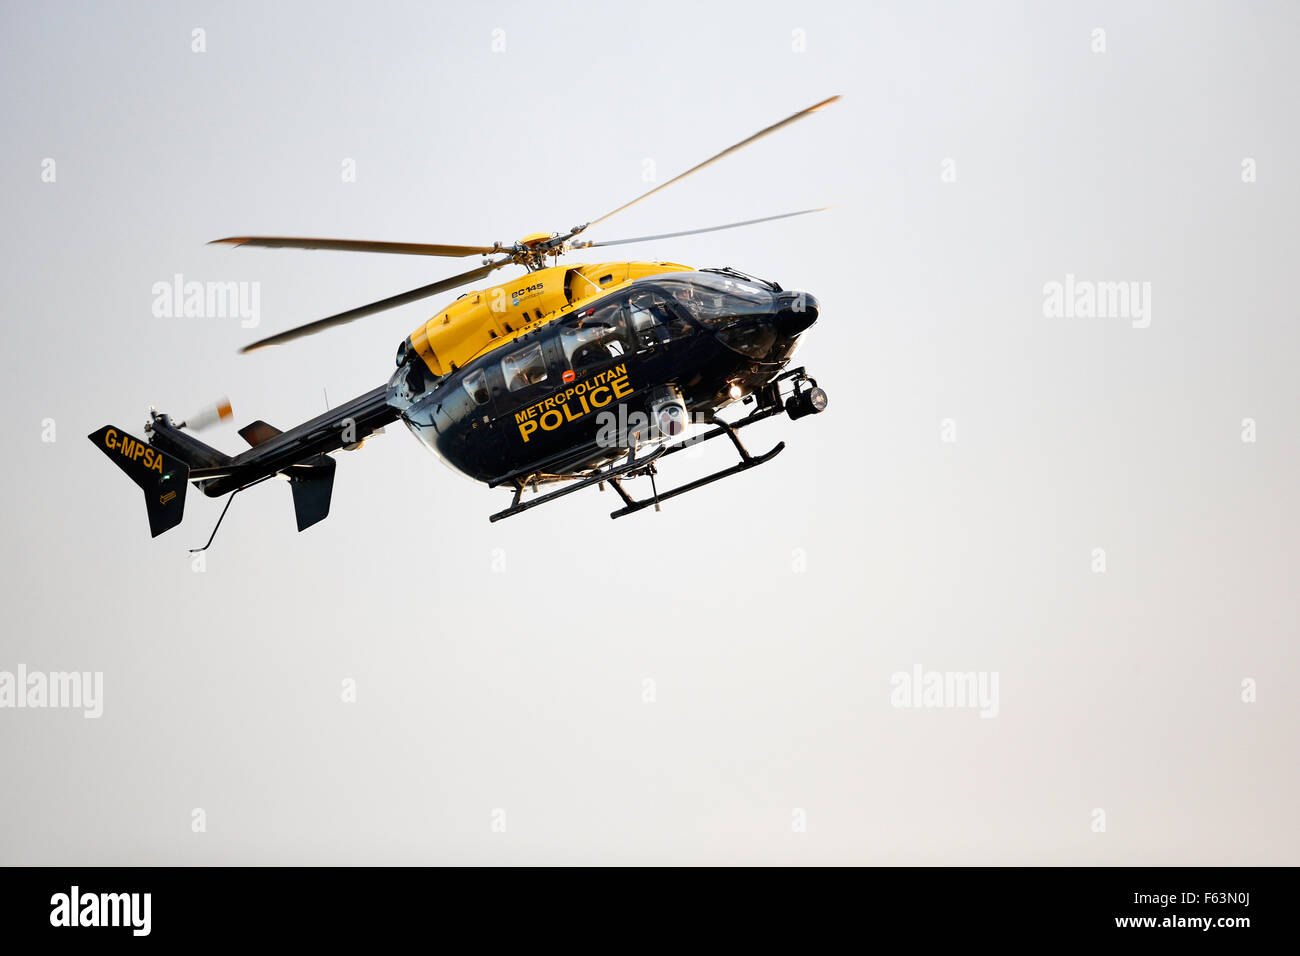 A Metropolitan Police helicopter flies over London to observe crowd movement during a major sports event in the - Stock Image